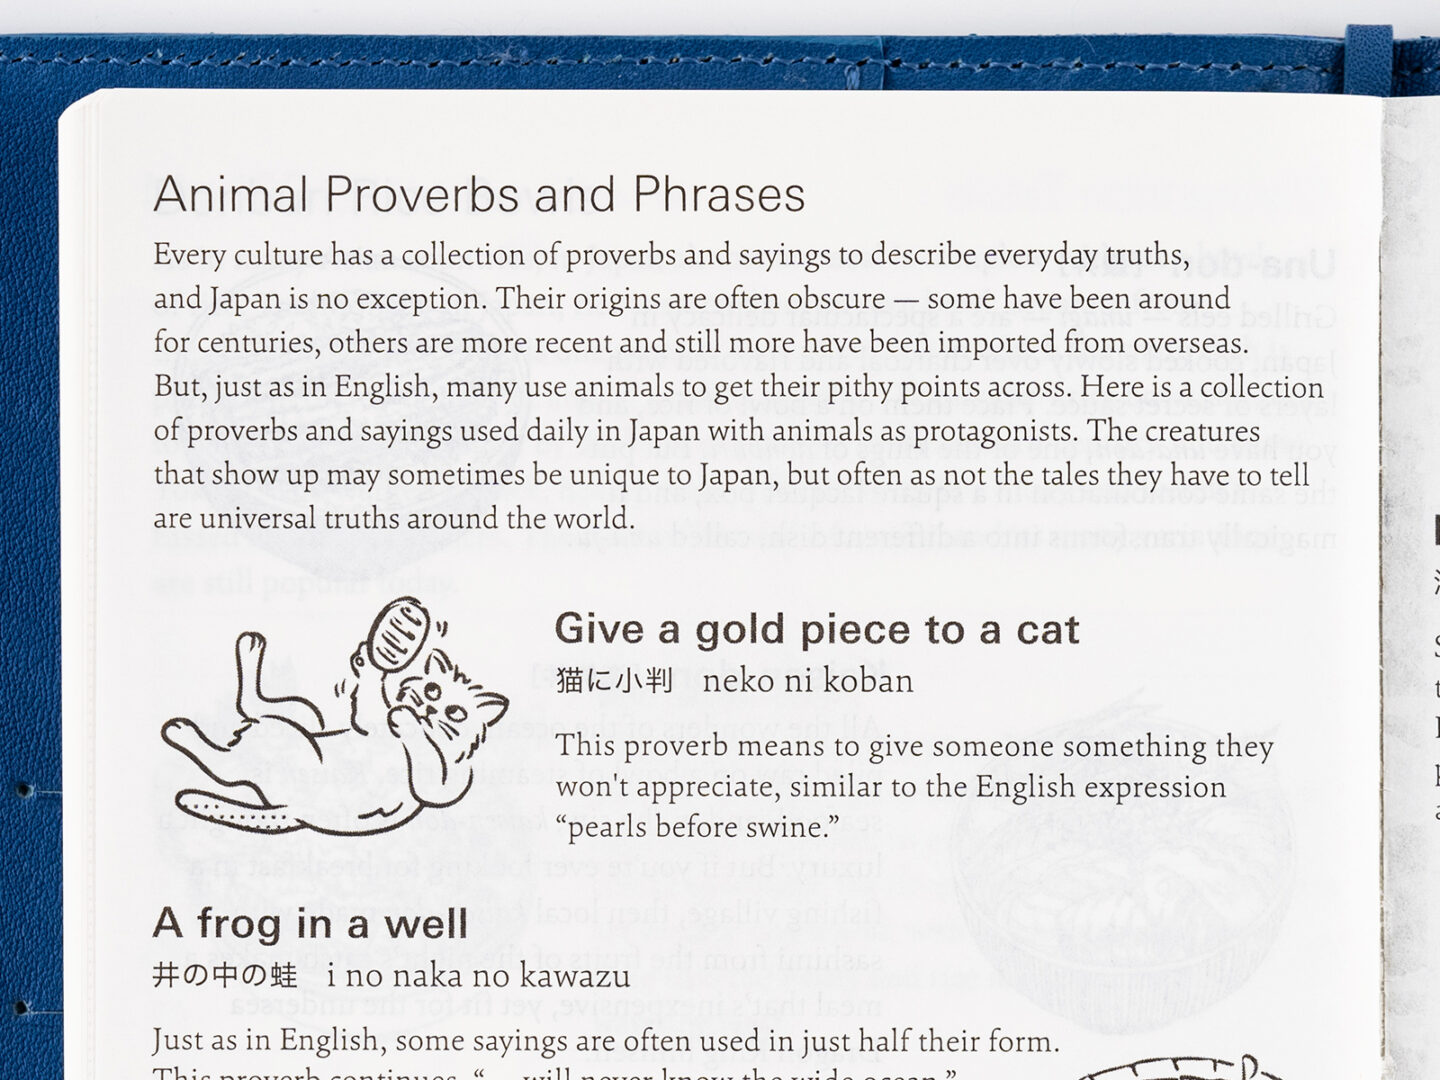 Animal Proverbs and Phrases